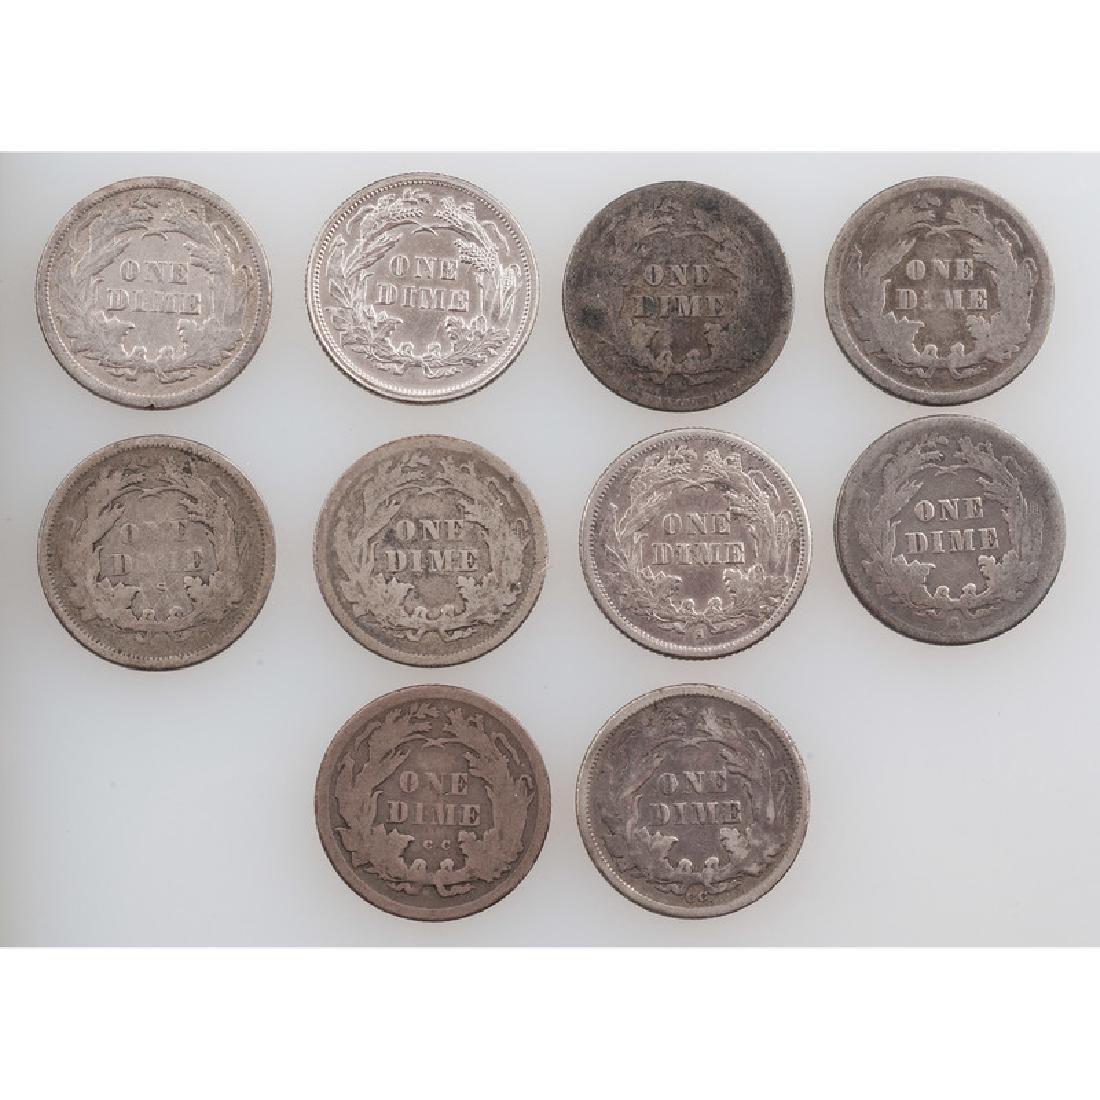 United States Liberty Seated Dimes 1874-1877 - 2